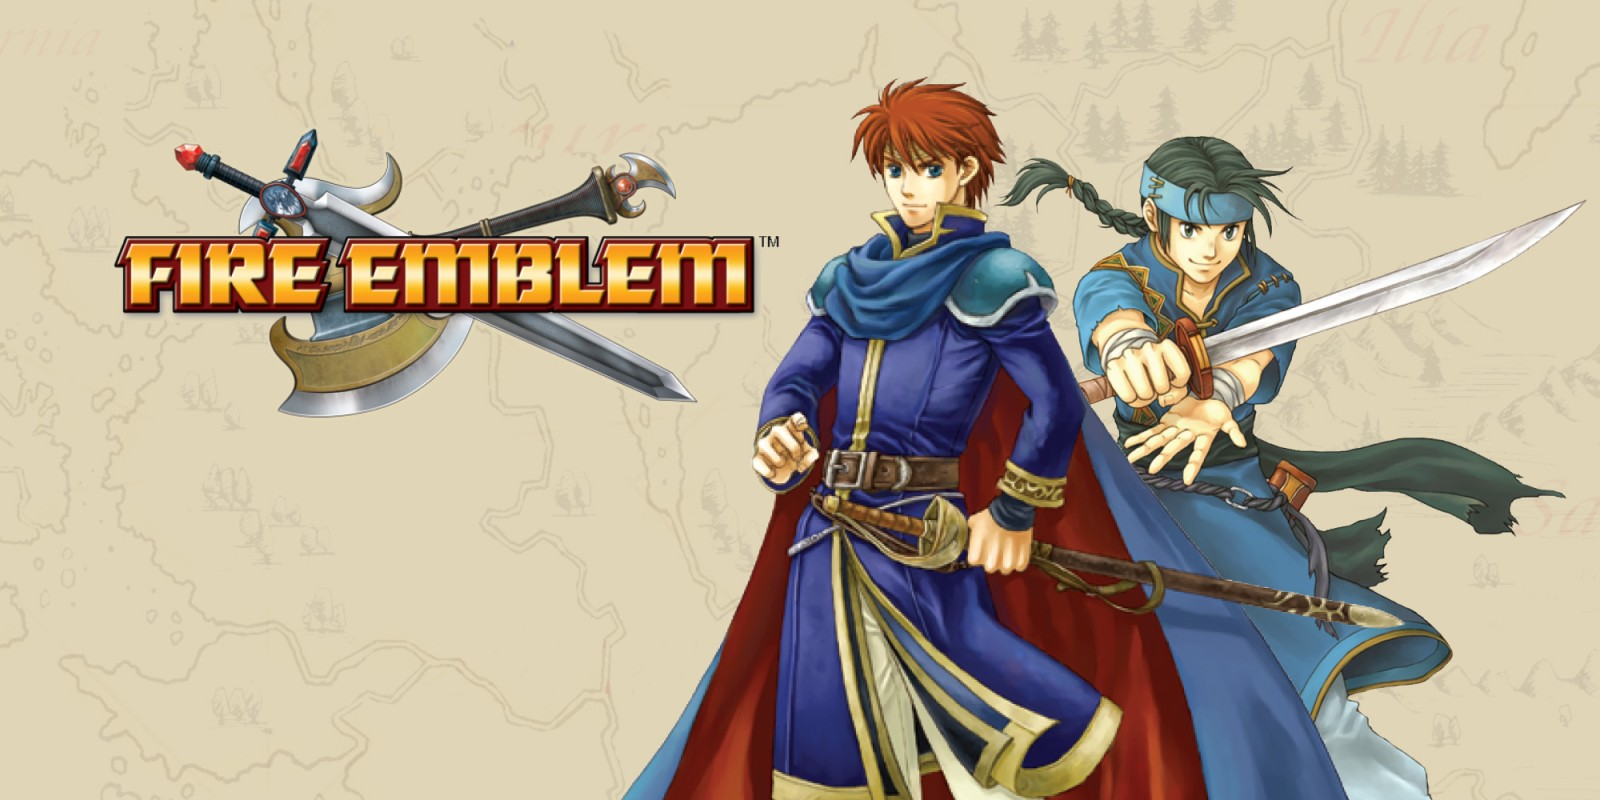 Wii U Fire Emblem The Blazing Blade